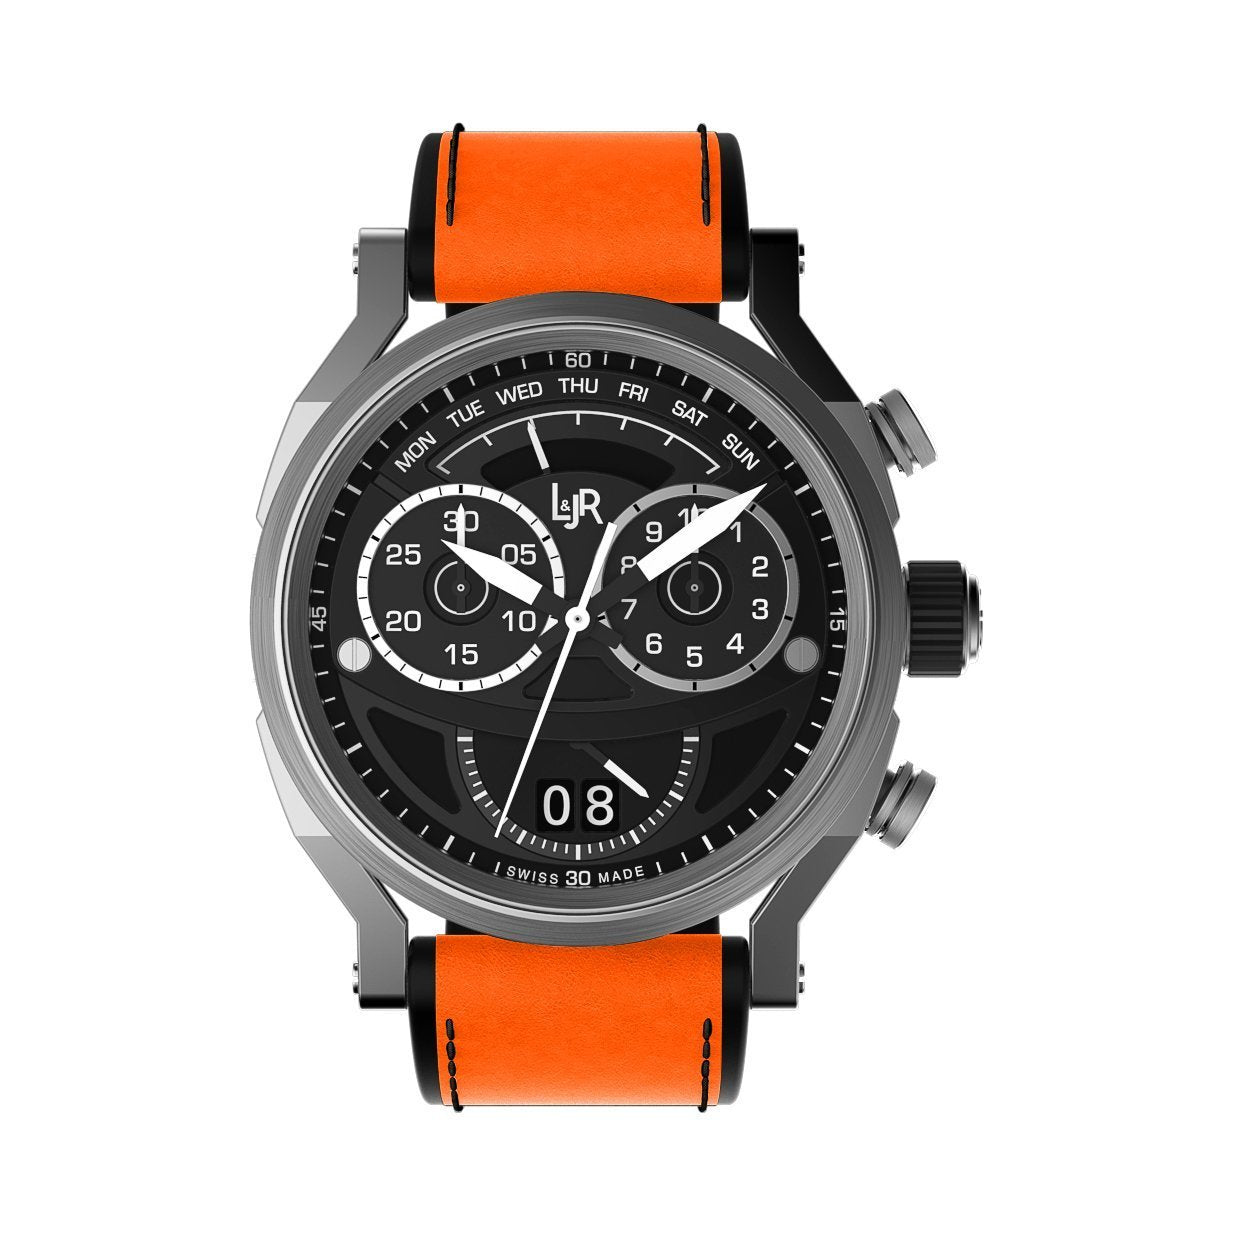 L&Jr Chronograph Day and Date Black Orange - Watches & Crystals